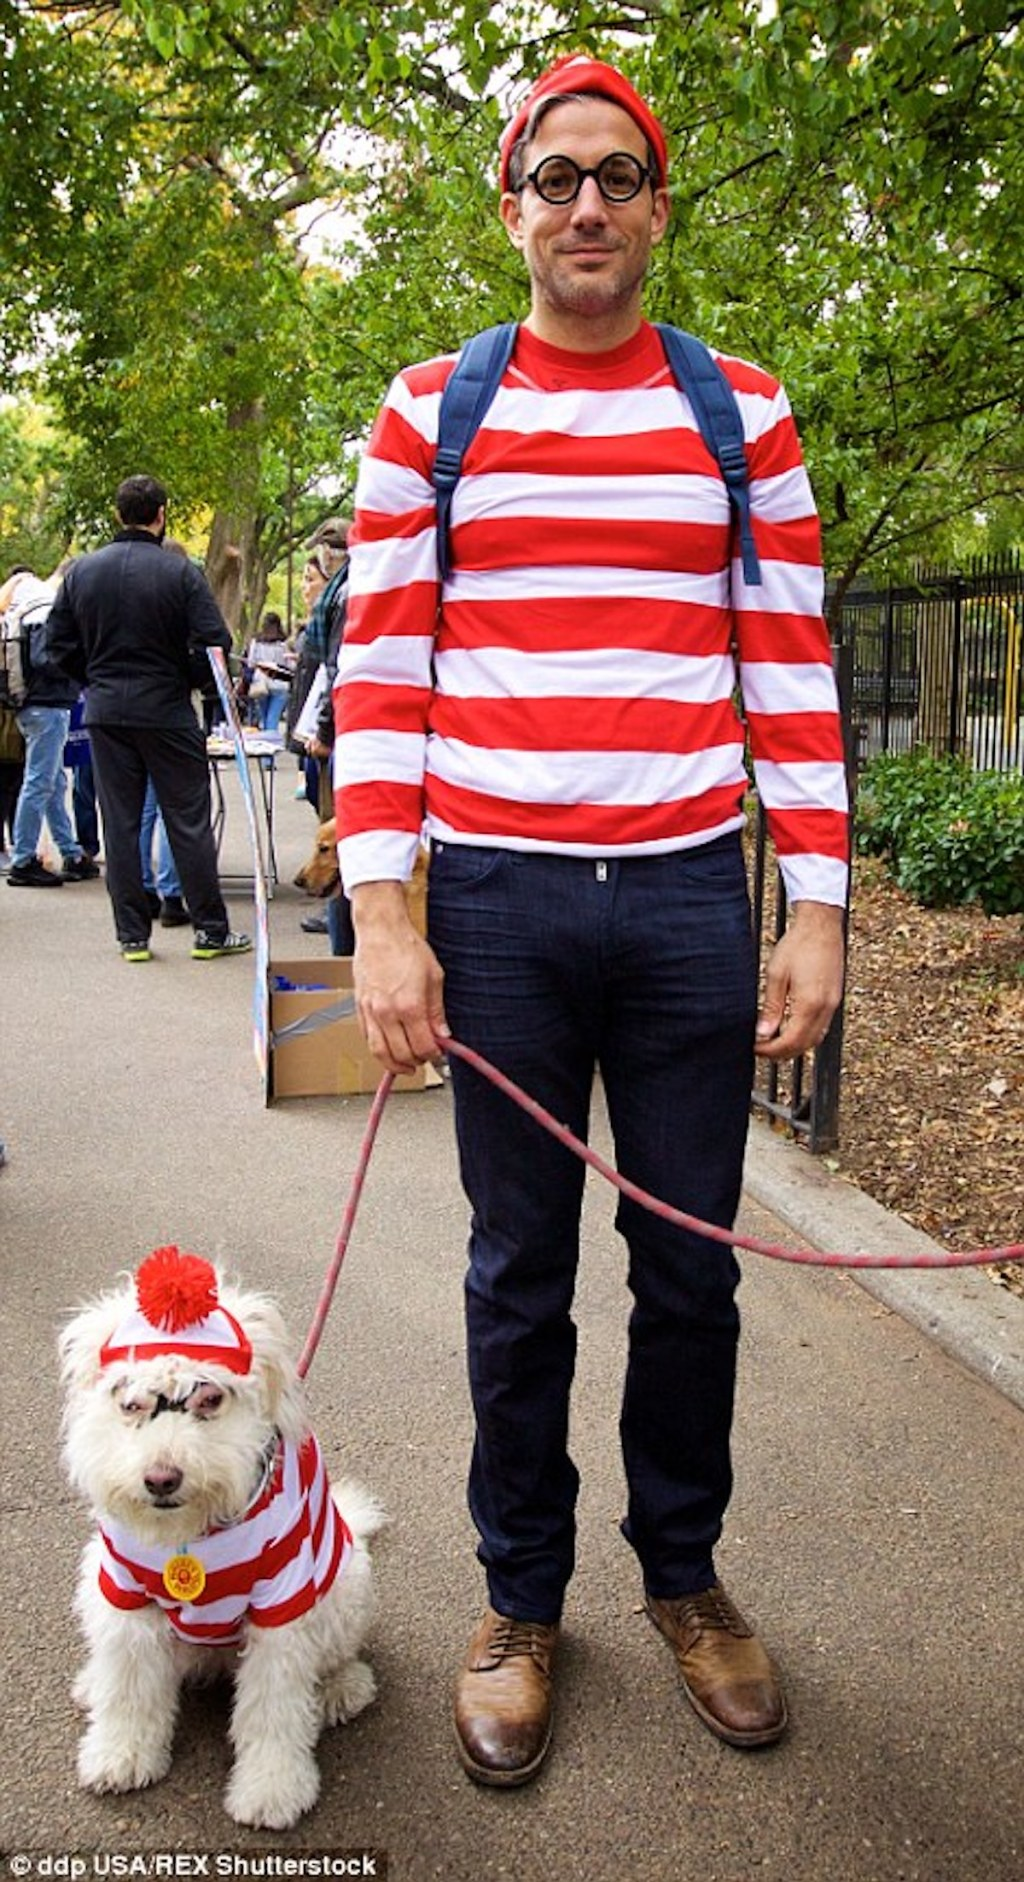 man and dog dressed up as where's waldo outside